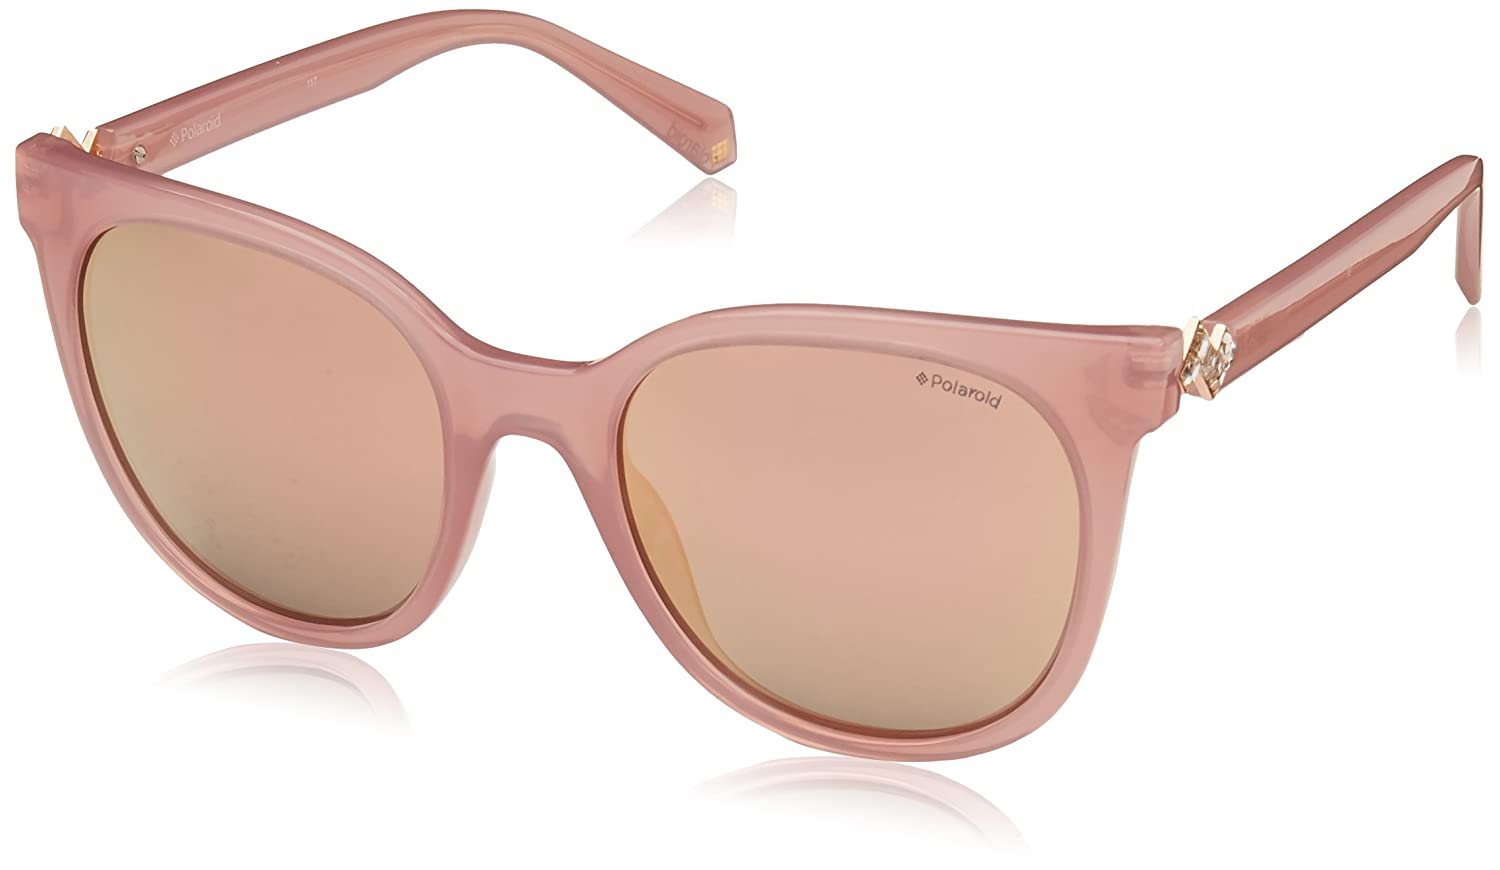 Polaroid Sunglasses Women's Pld4062sx Polarized Square, Pink, 52 mm 4062-S-X